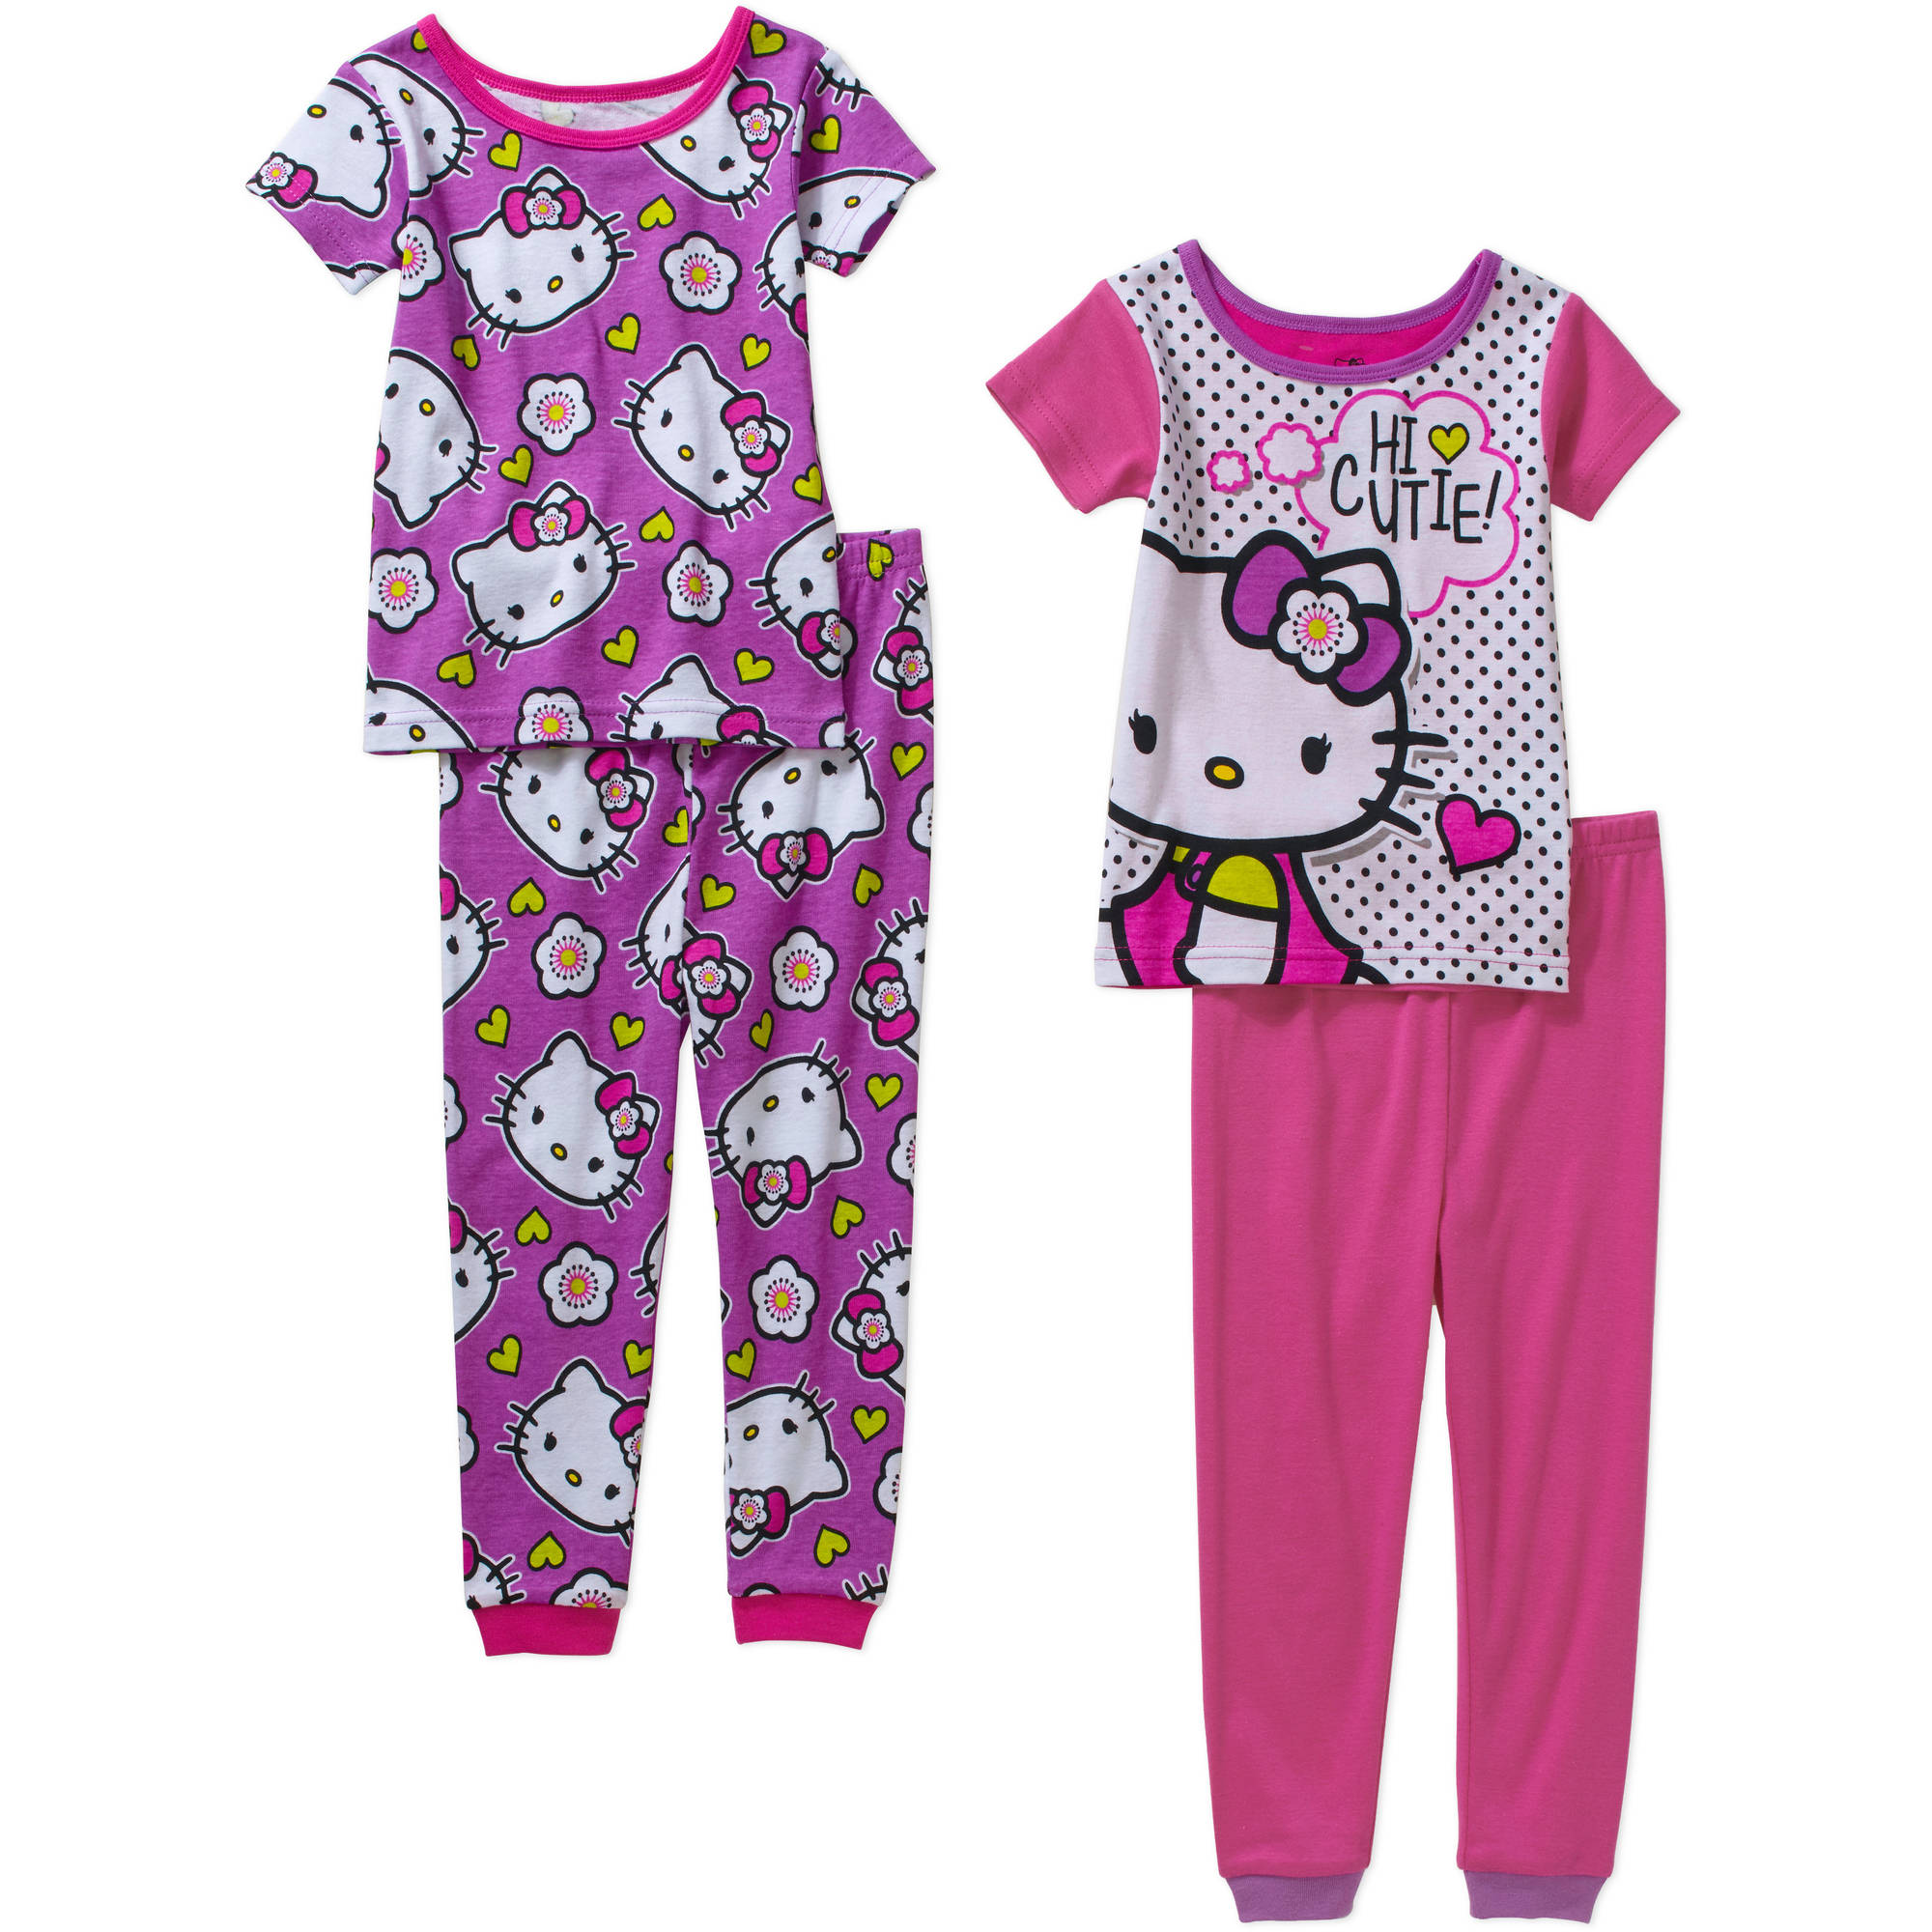 Hello Kitty Toddler Girl Cotton Tight Fit Short Sleeve PJ Set, 4-Pieces